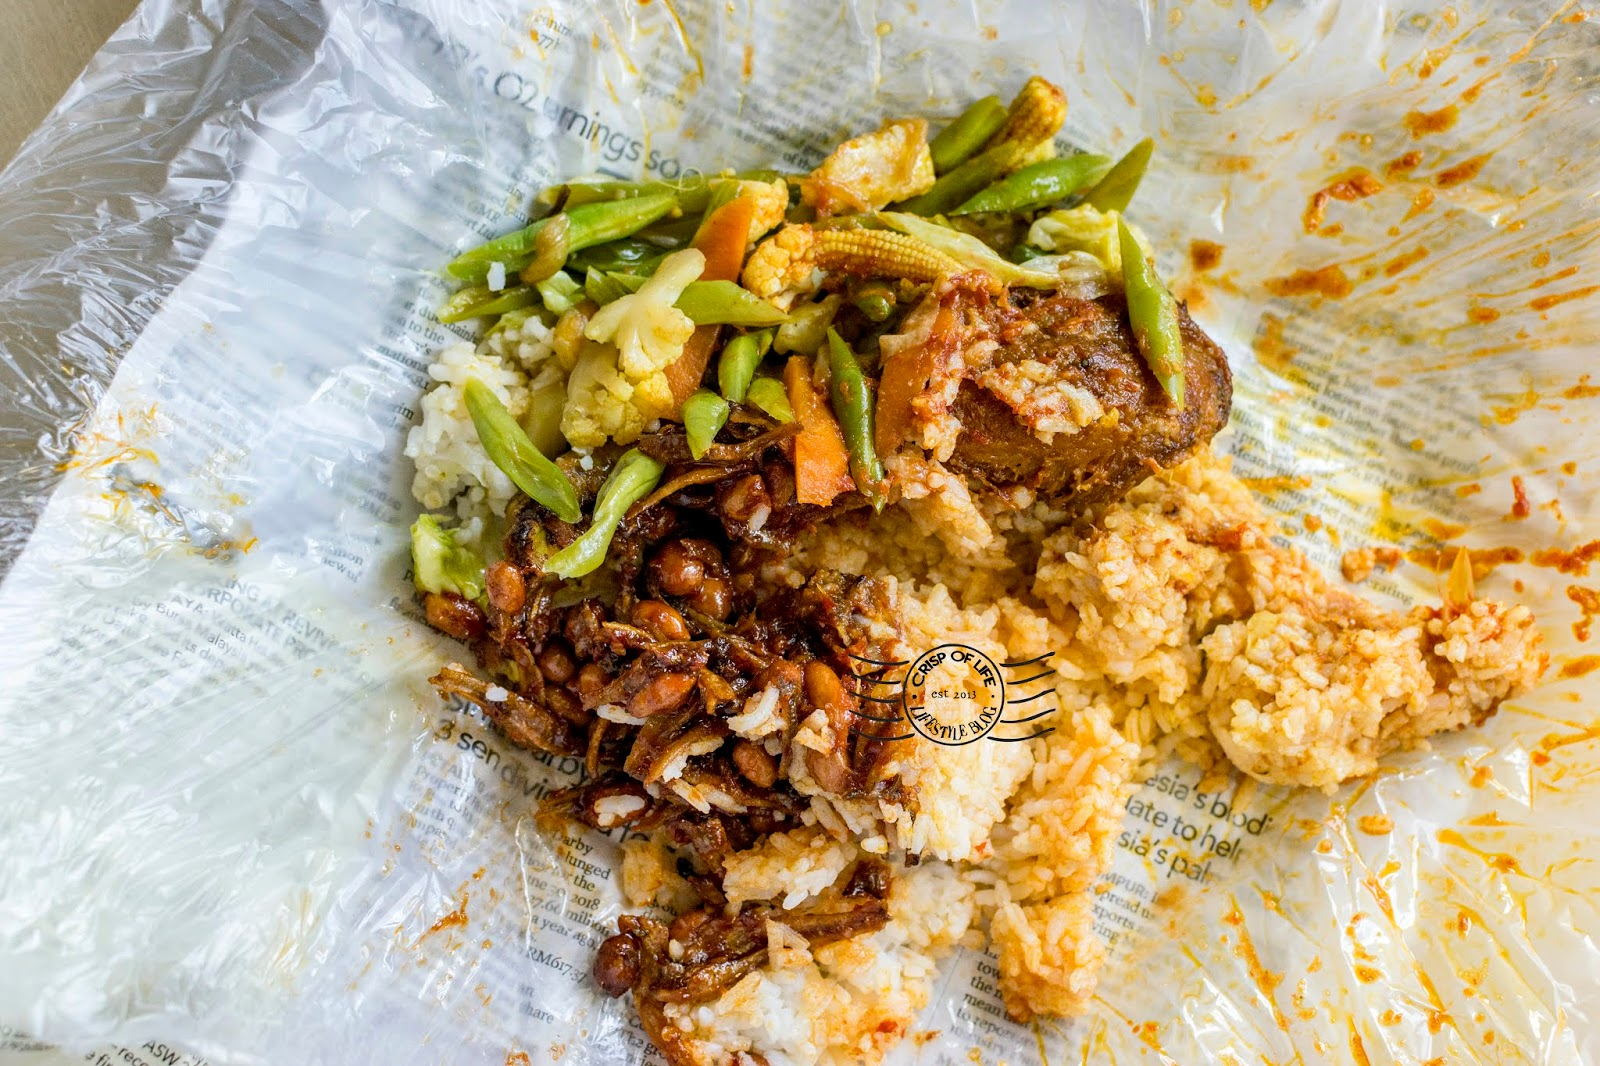 Sungai Pinang Penang Food